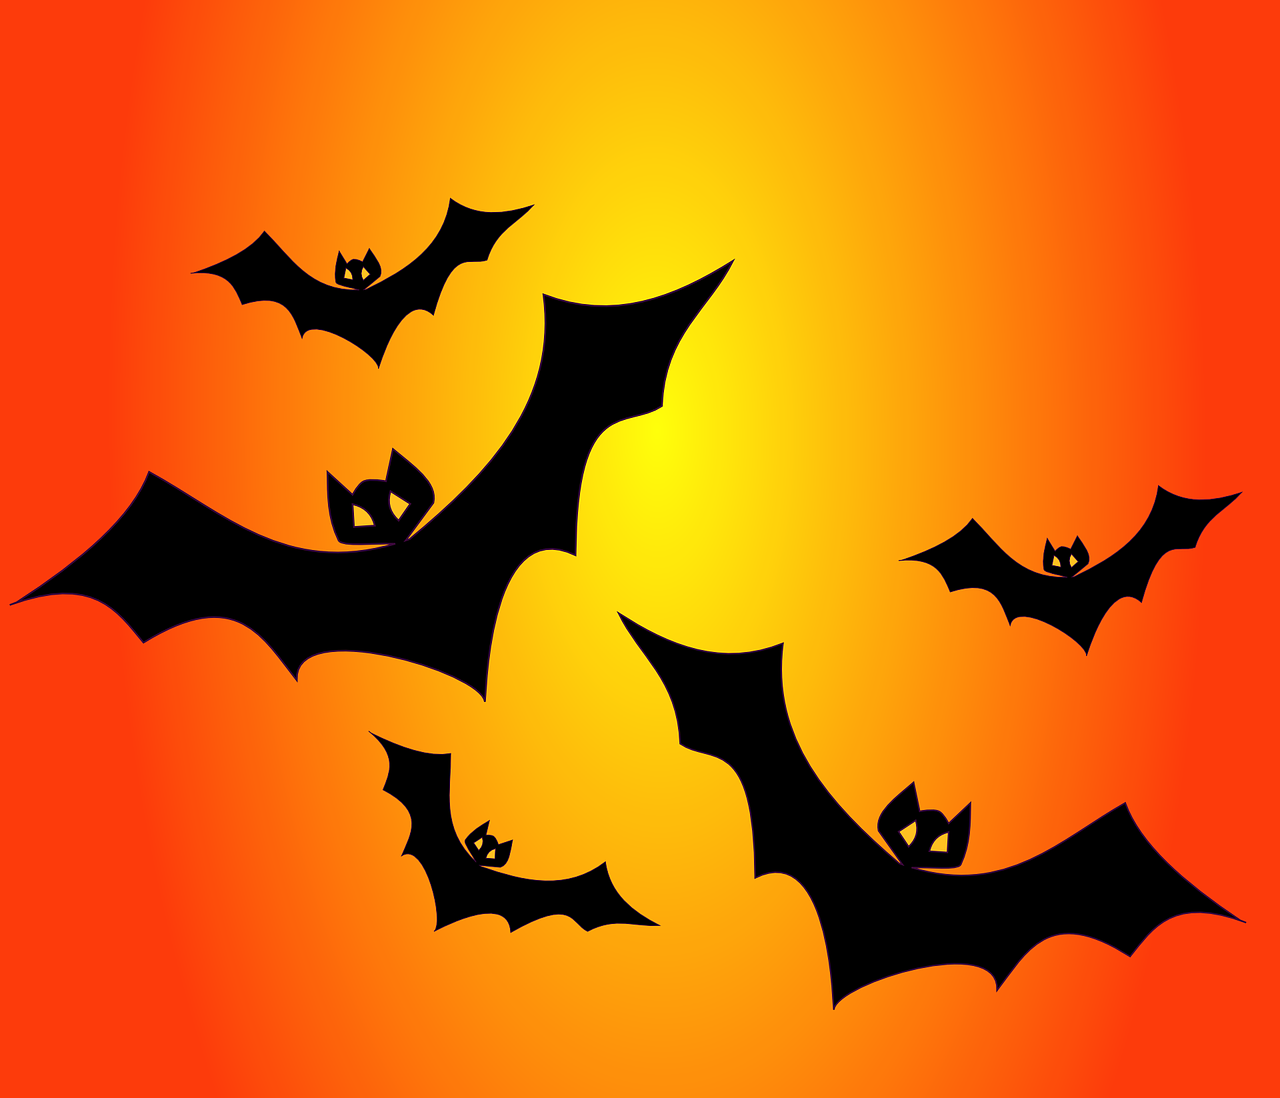 Halloween party invitation clipart banner library Pin by Sagely on Activity Calendar Clip-Art | Pinterest | Clip art banner library